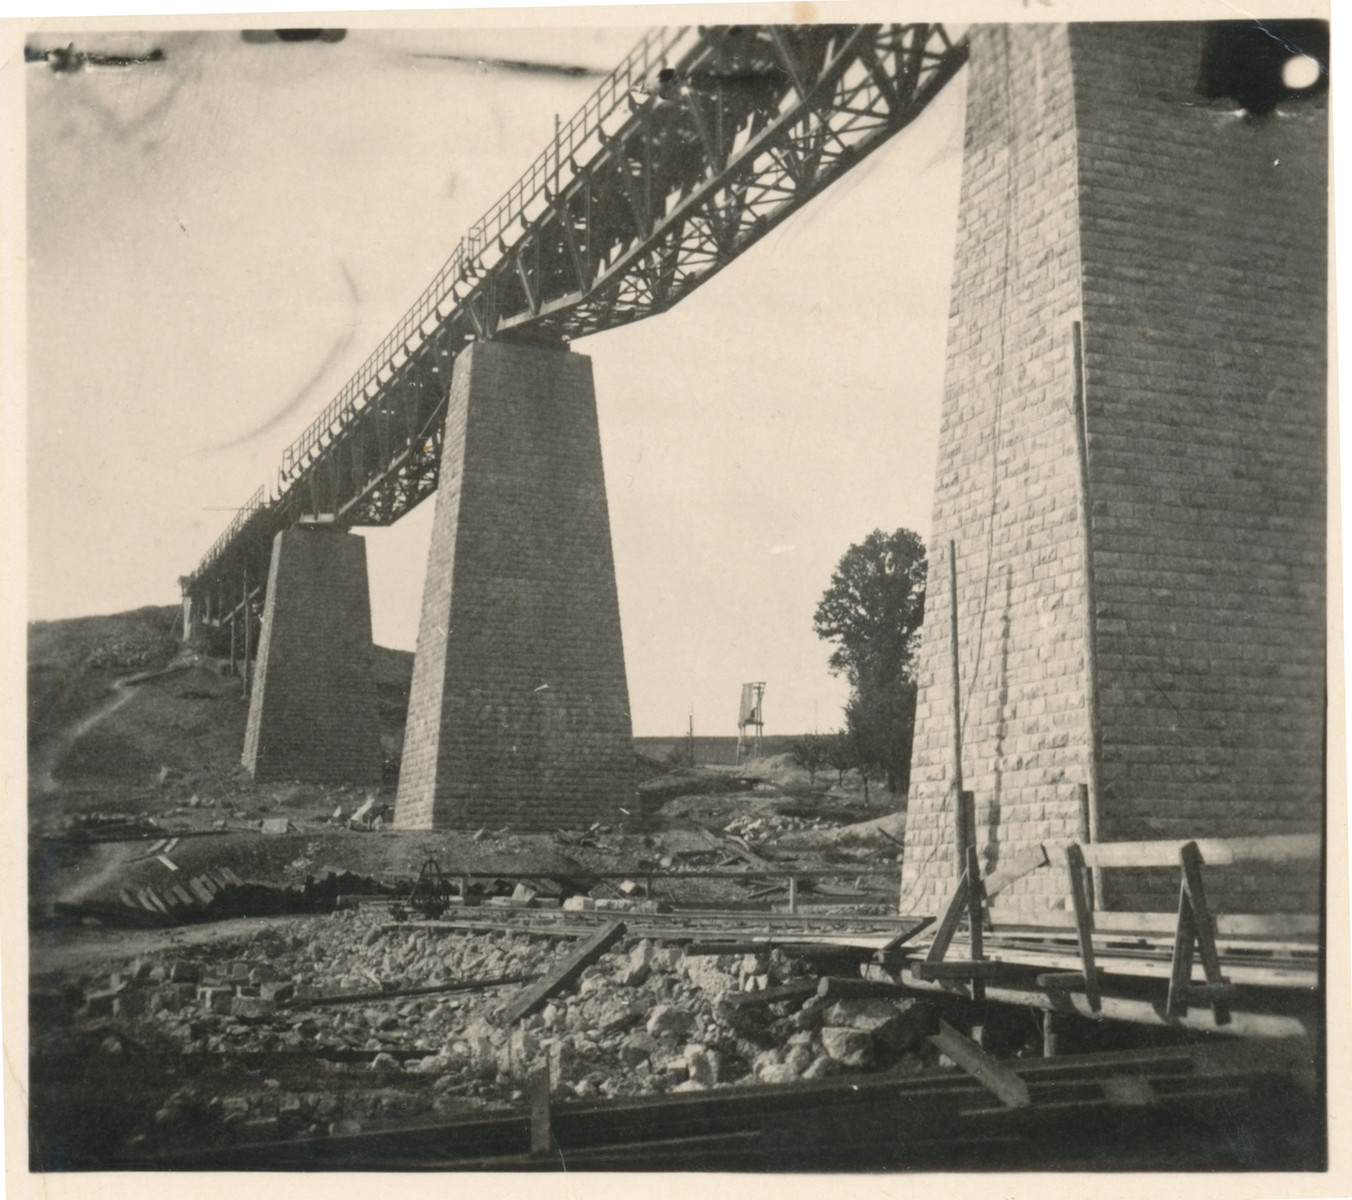 View of the bridge in Hanushovce built by Jewish forced laborers.